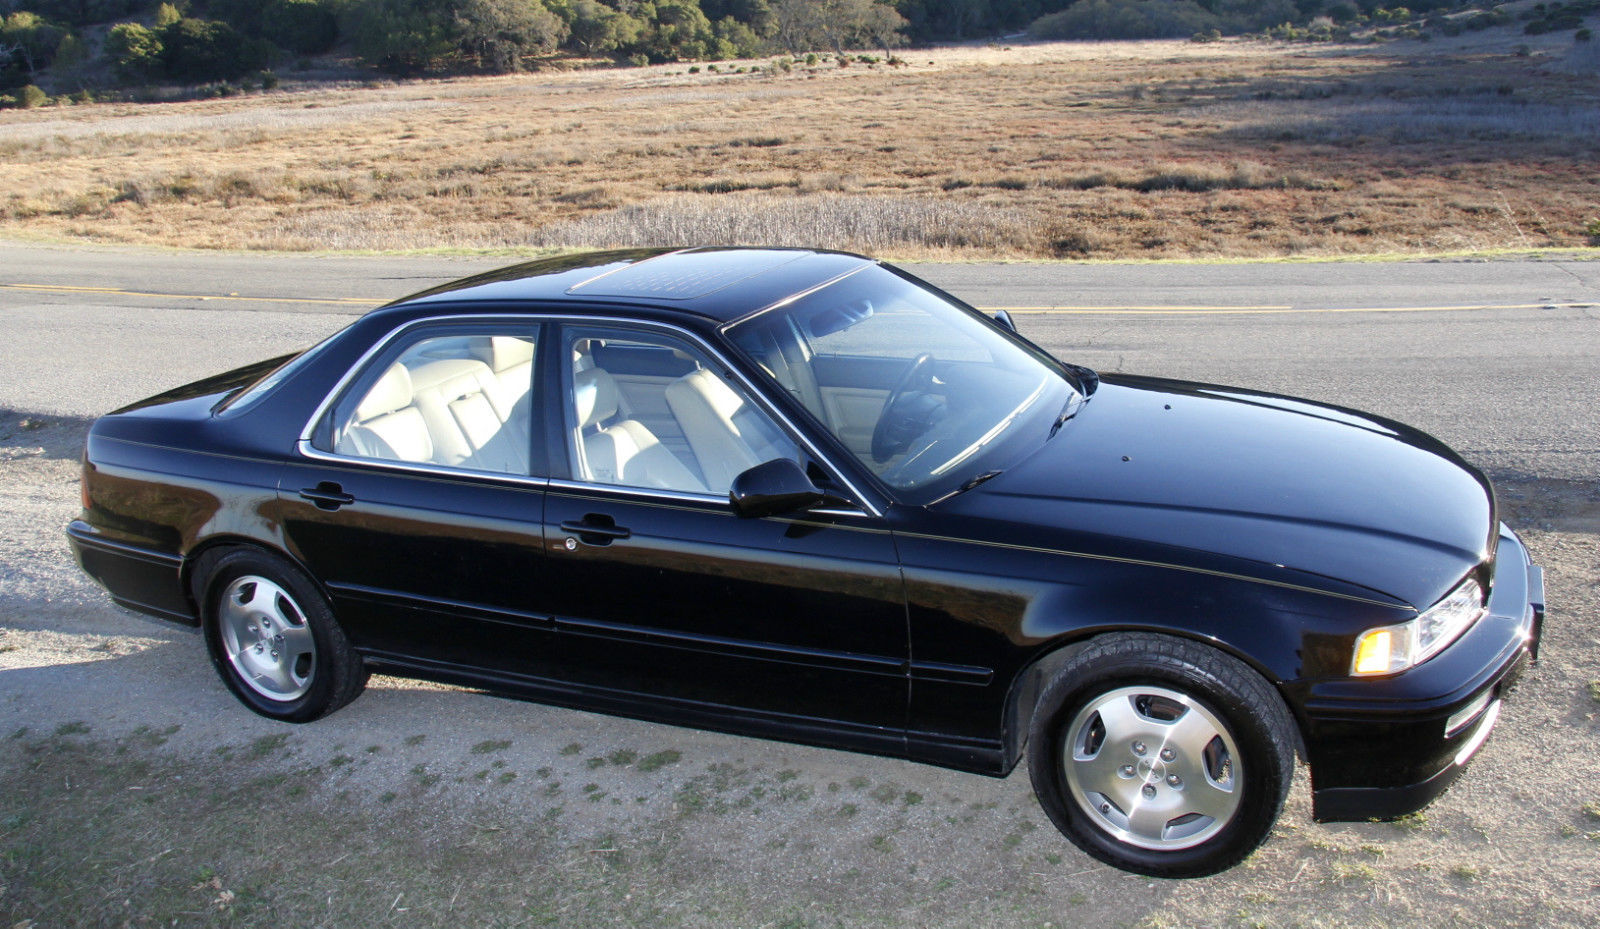 Black 1994 Acura Legend GS 6 Speed Manual Sedan with Navigation - Low  Mileage!